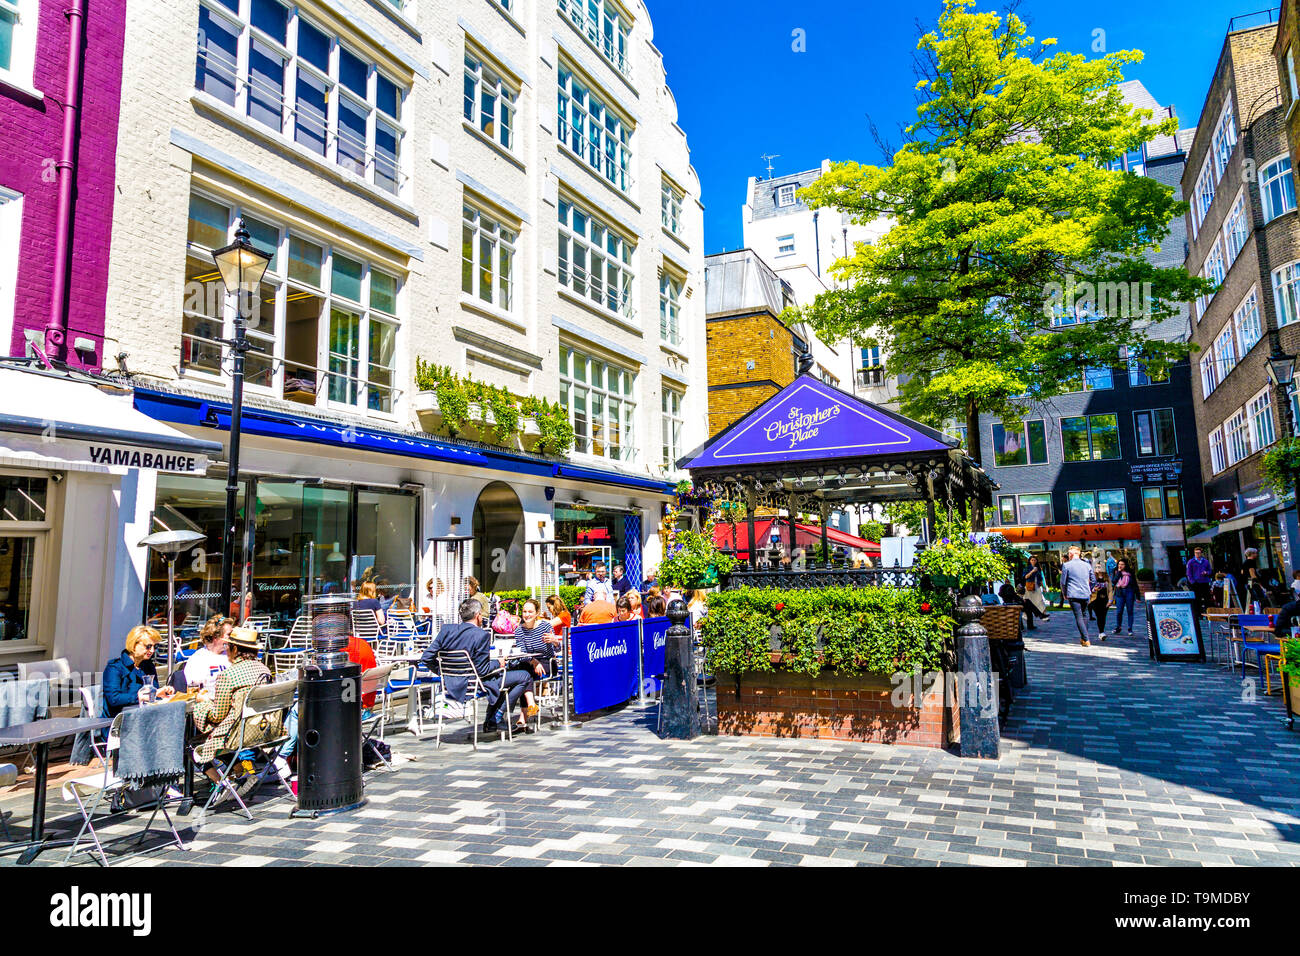 People eating at al fresco restaurants in St Christopher's Place, London, UK - Stock Image